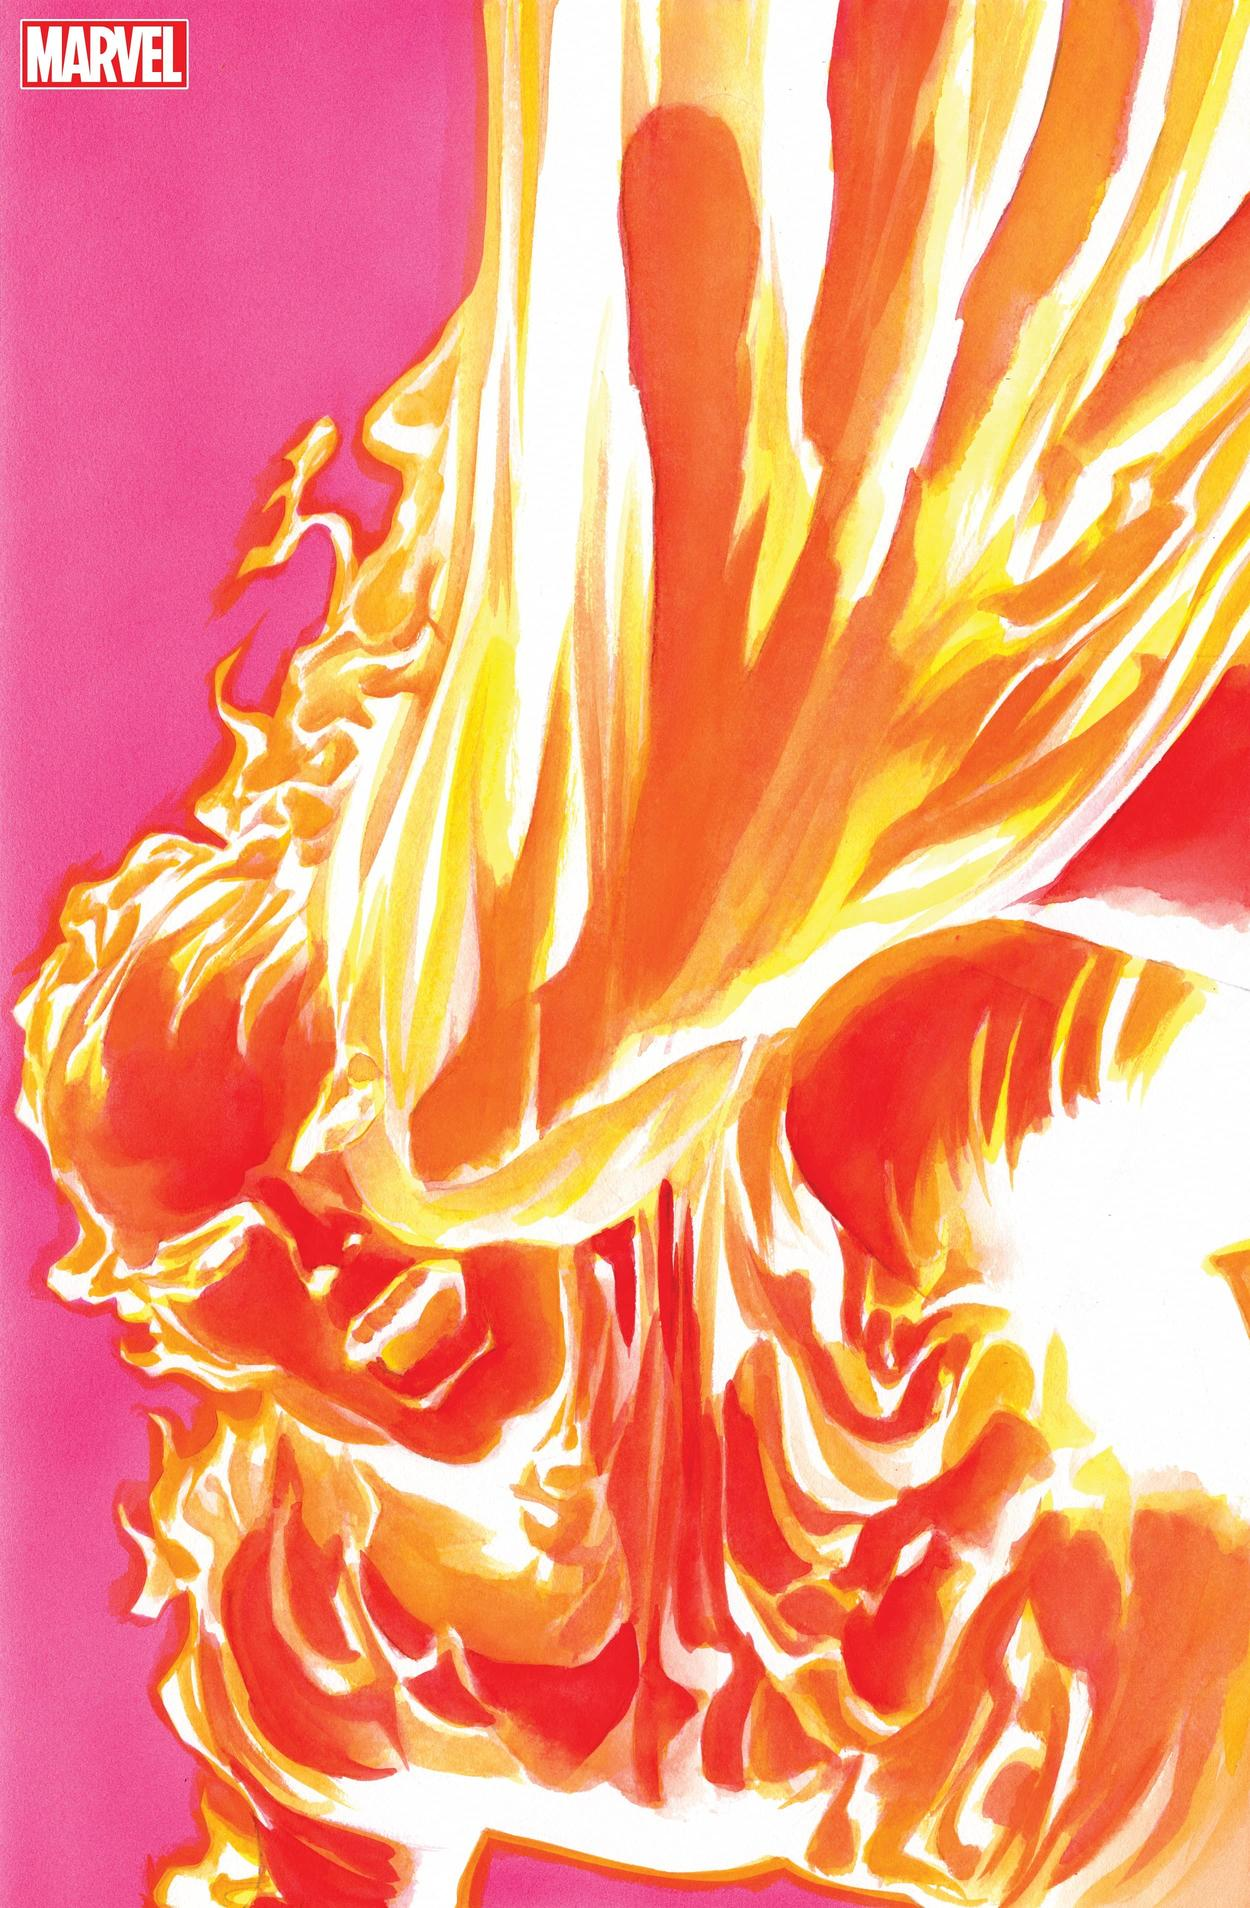 MARVELS SNAPSHOT: FANTASTIC FOUR #1 cover by Alex Ross